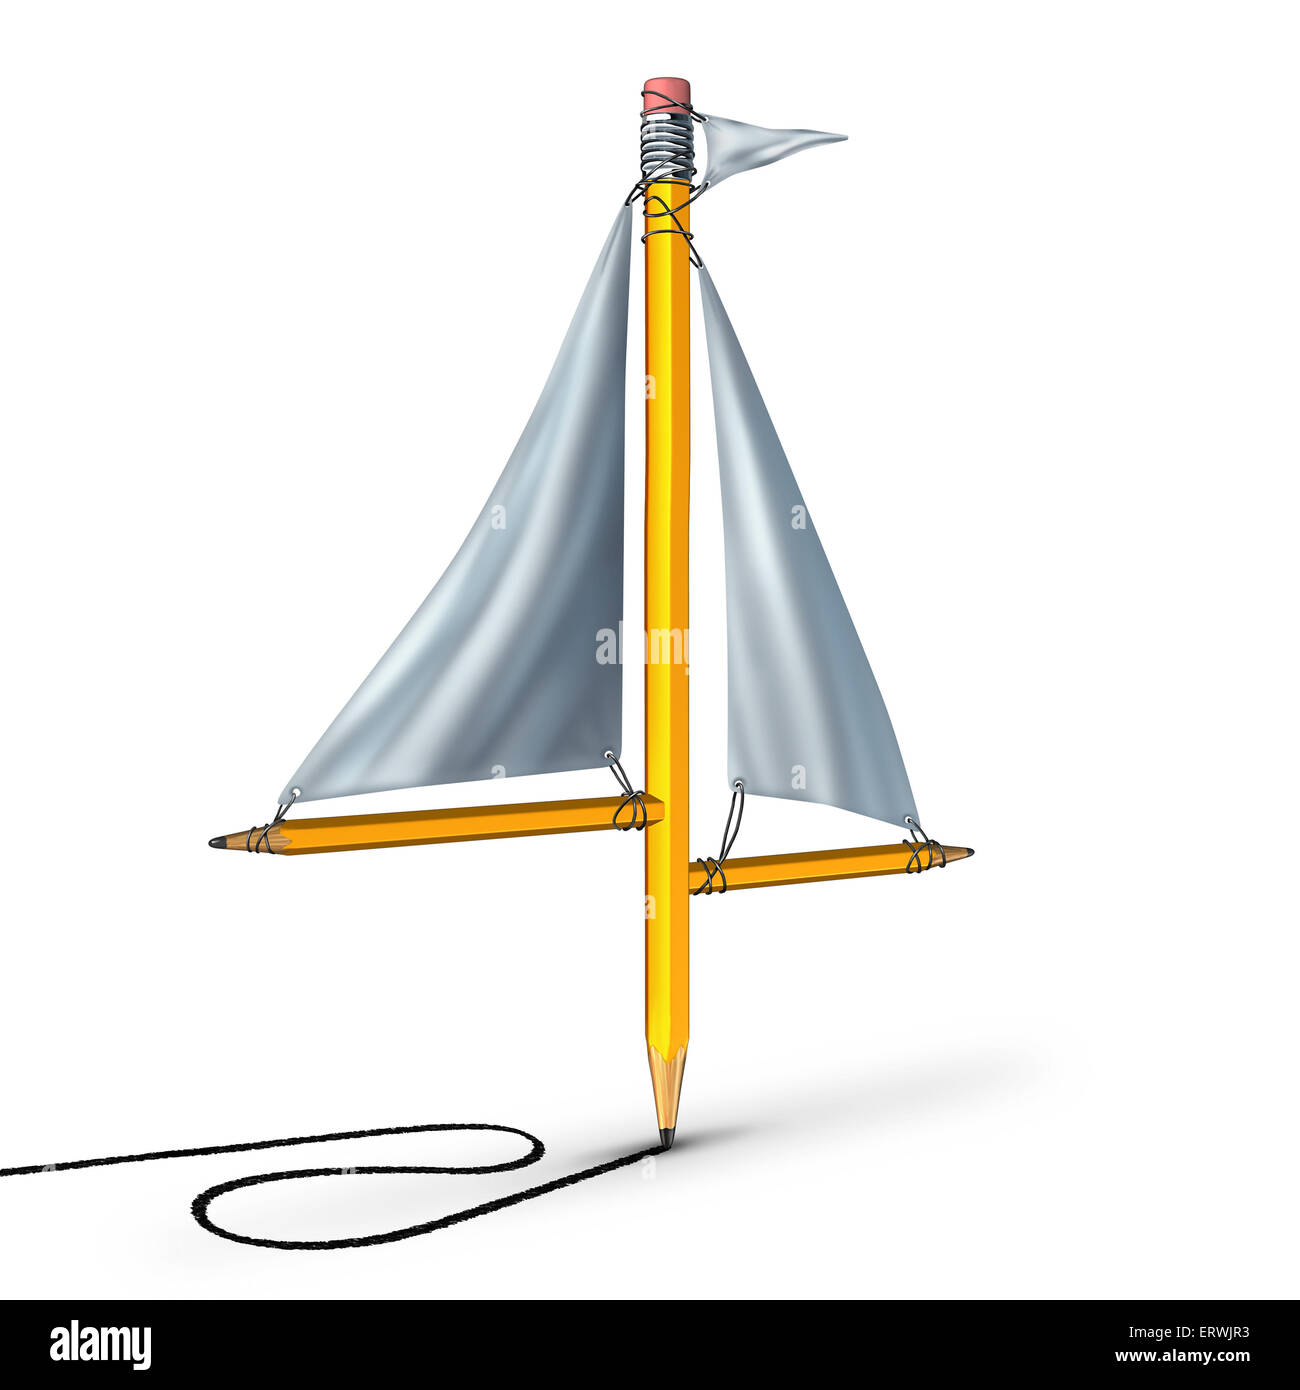 Sailing creativity metaphor as a group of pencils shaped as a boat sail representing the idea of adapting following - Stock Image